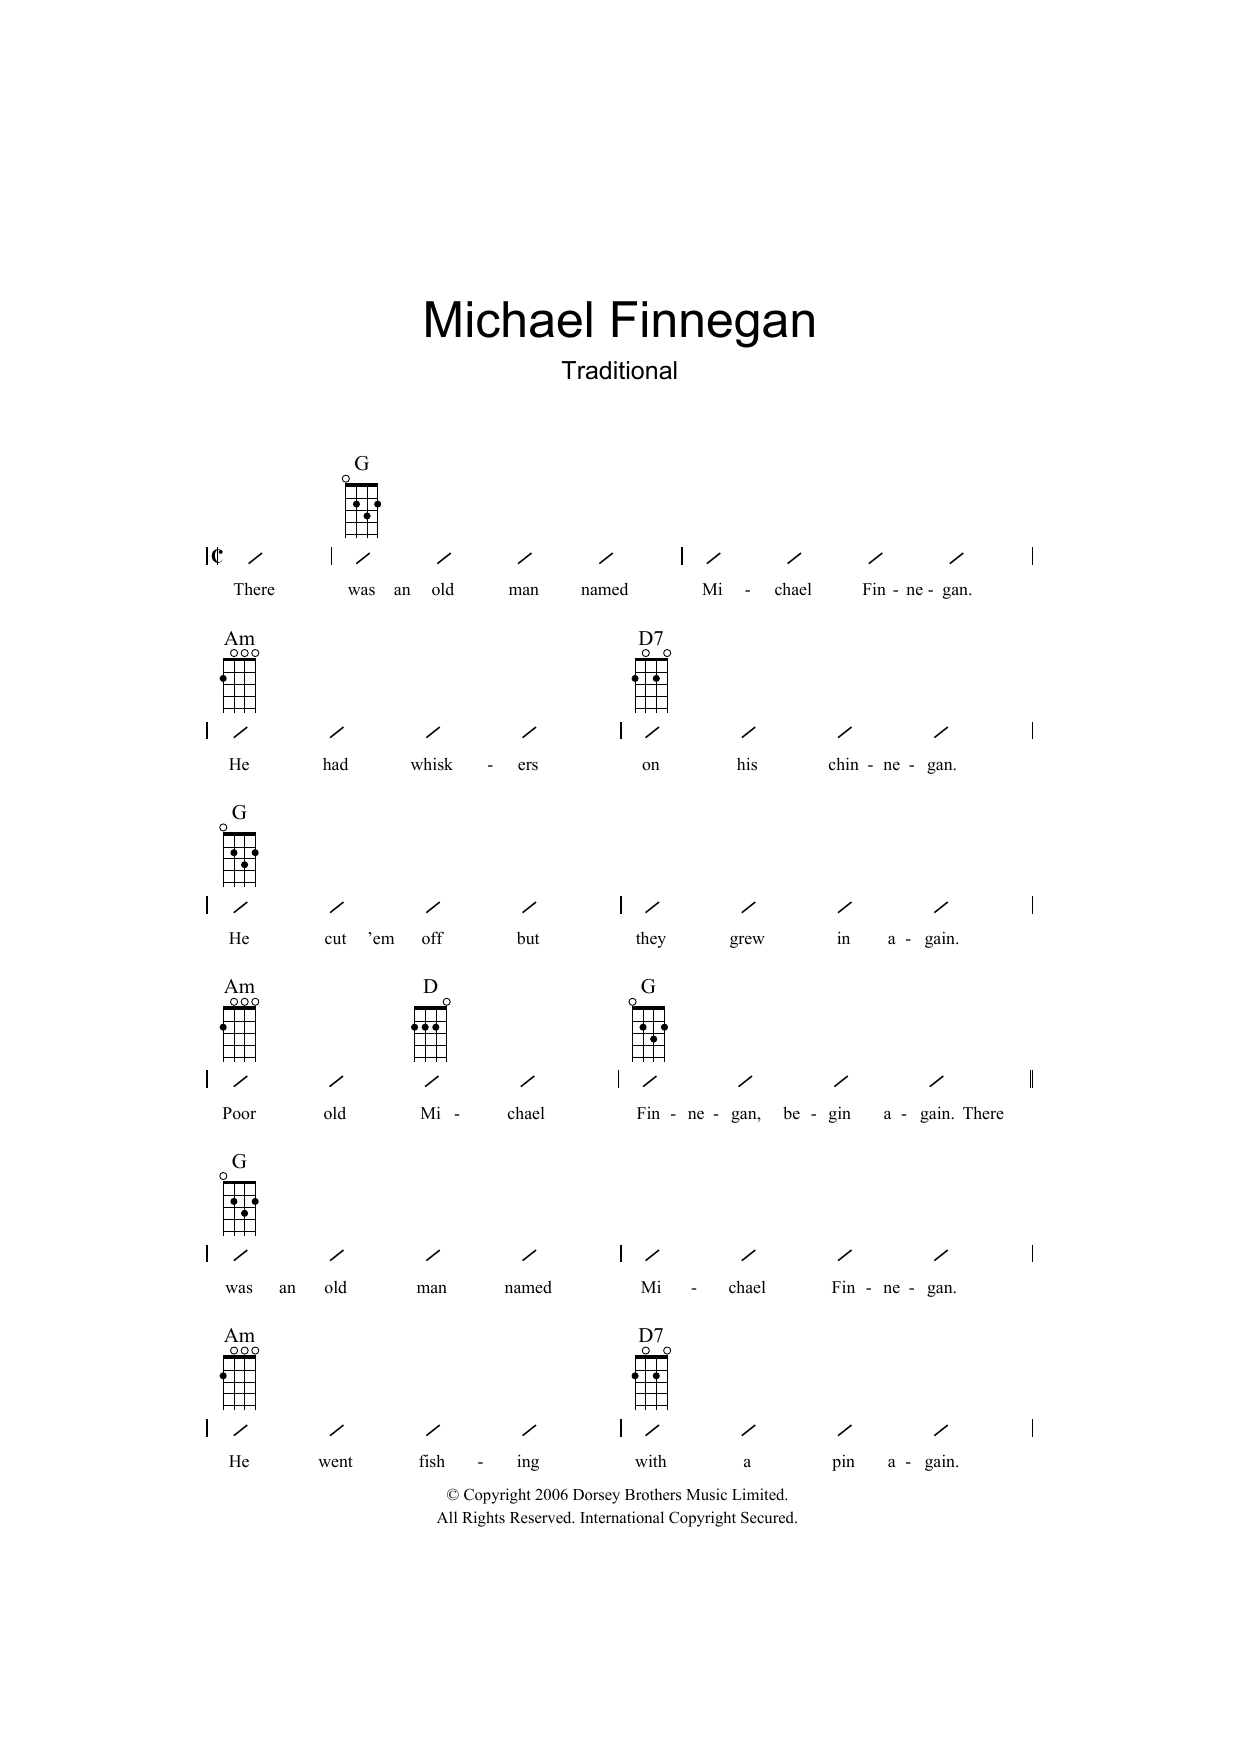 Traditional - Michael Finnegan